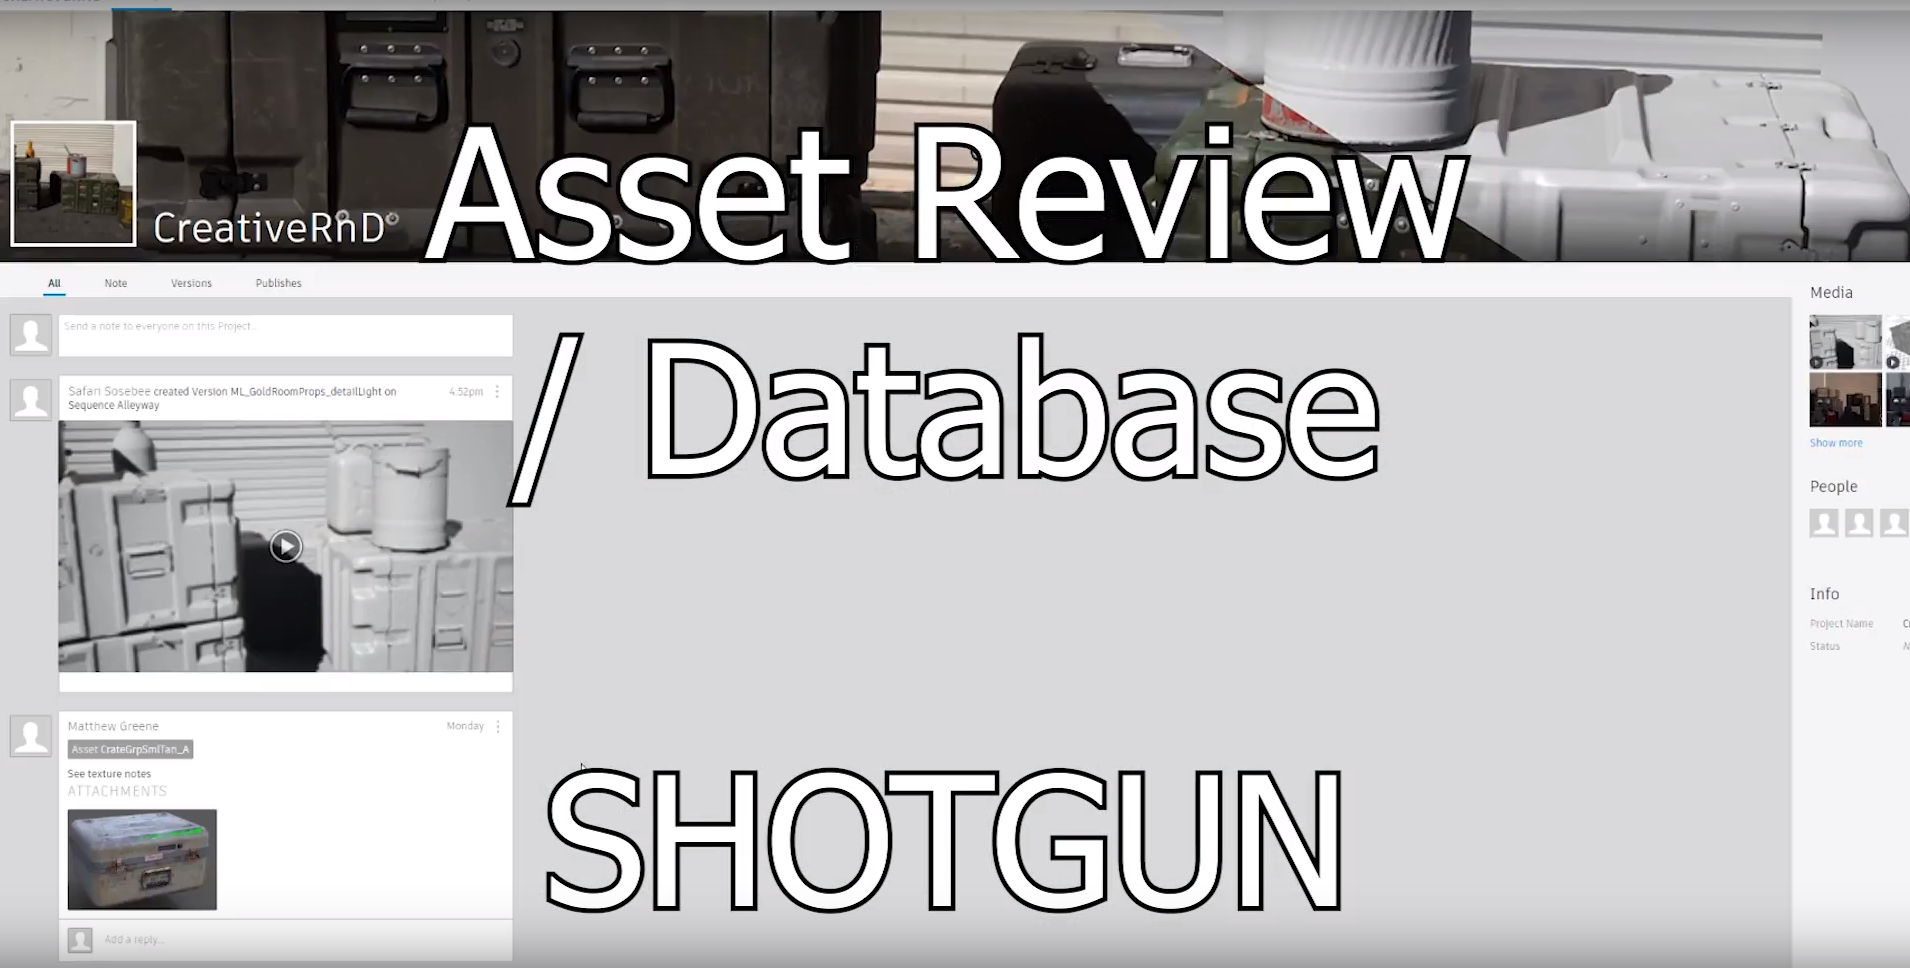 SHOTGUN! A review and production tracking tool-set for VFX, animation and games teams of all sizes. We've adapted it to our game/film pipe.